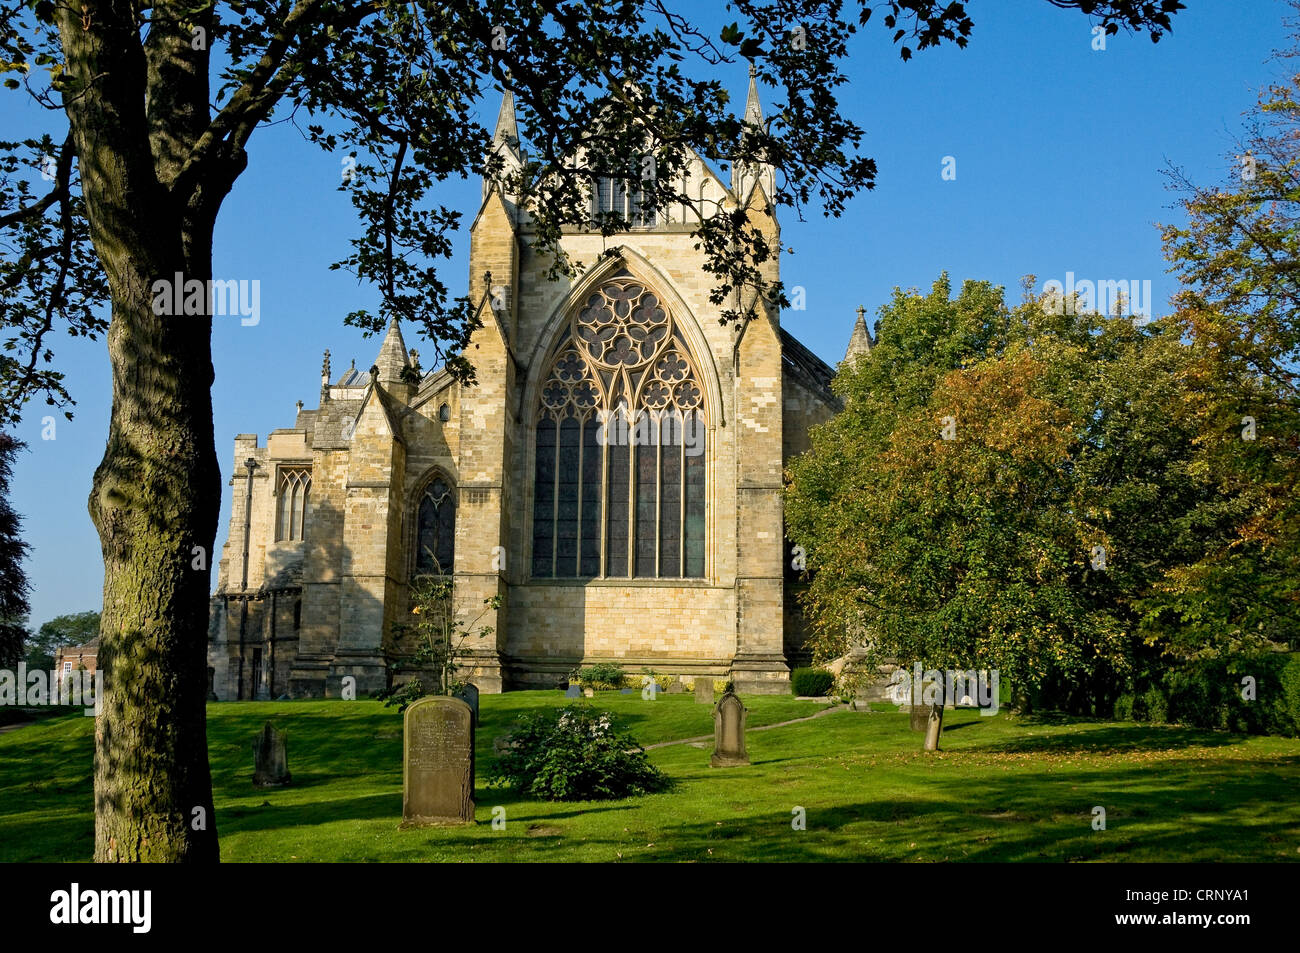 East Front of Ripon Cathedral. - Stock Image